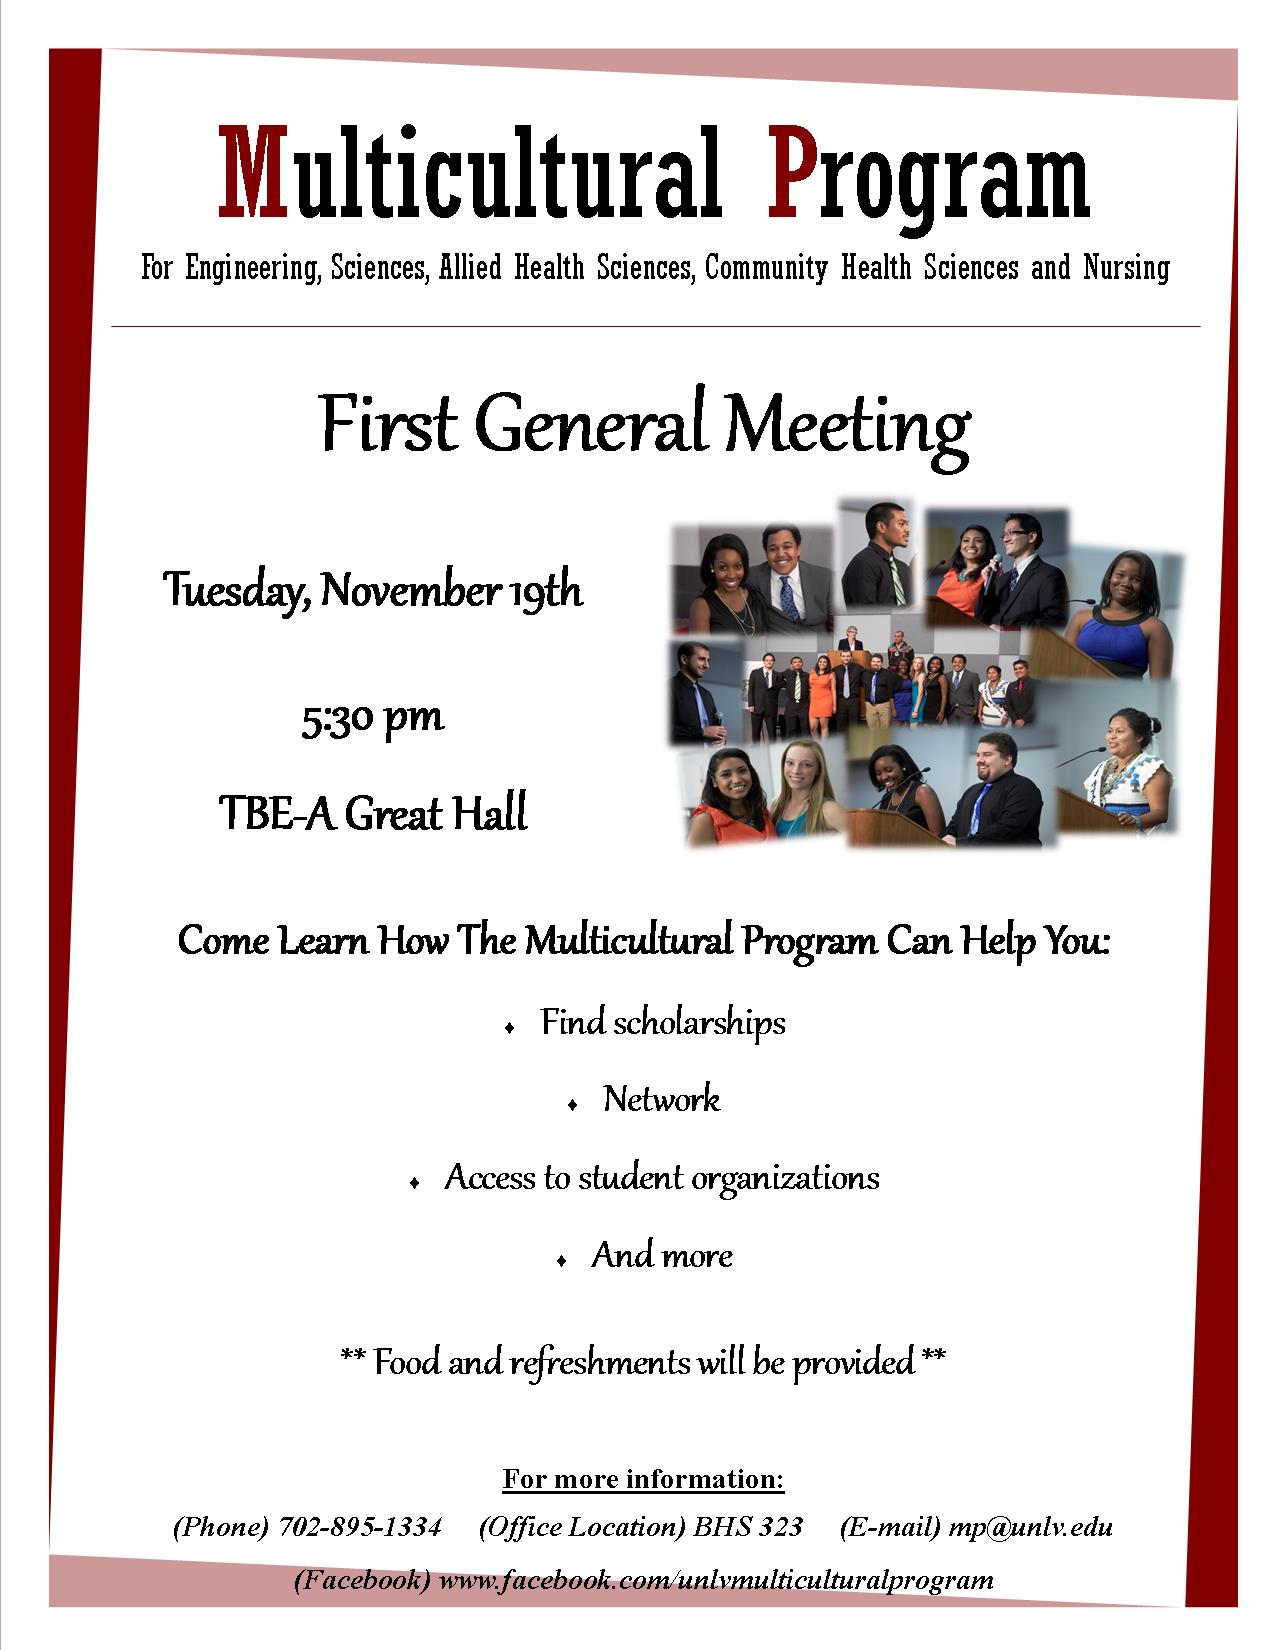 Multicultural Program Fall 2013 General Meeting